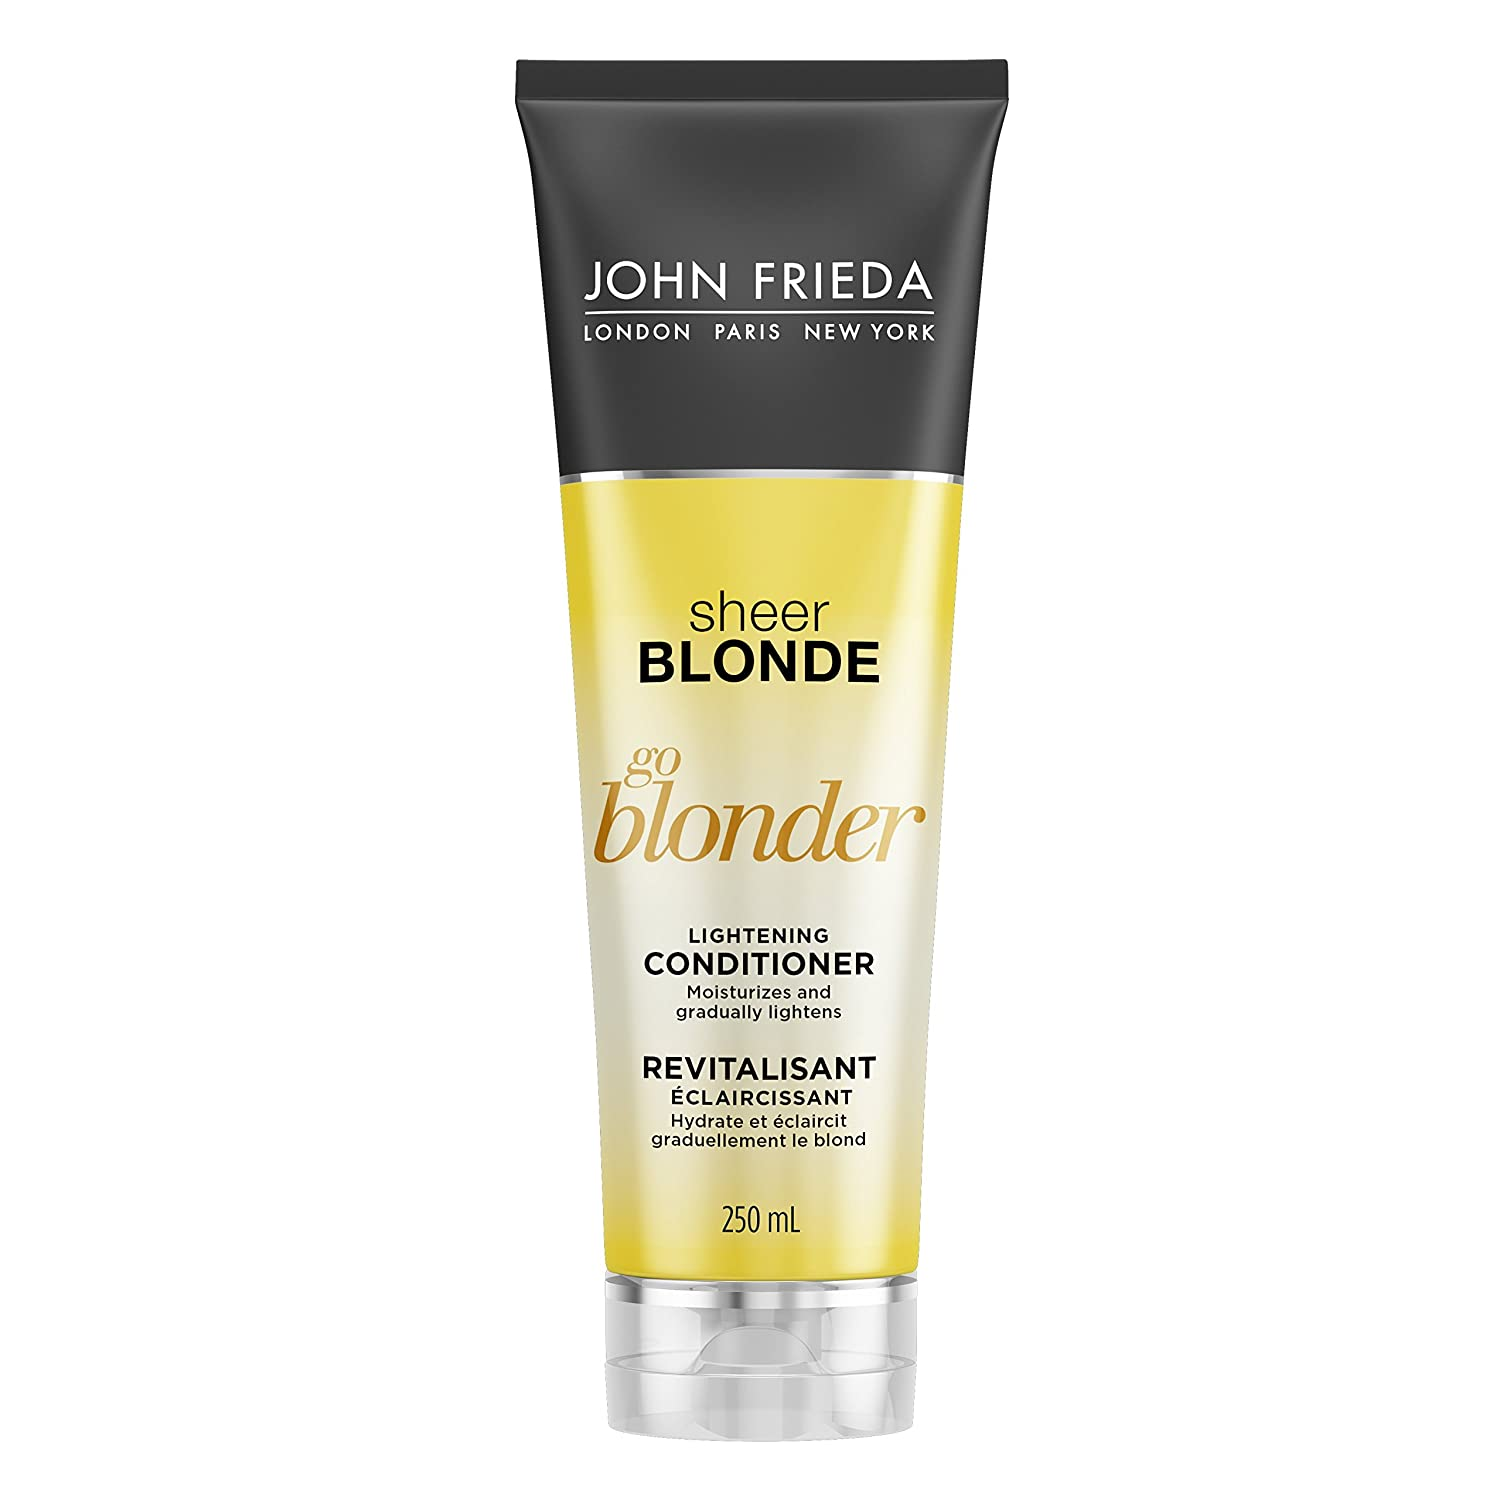 JOHN FRIEDA Sheer Blonde Go Blonder Lightening Conditioner, 250 ml Kao